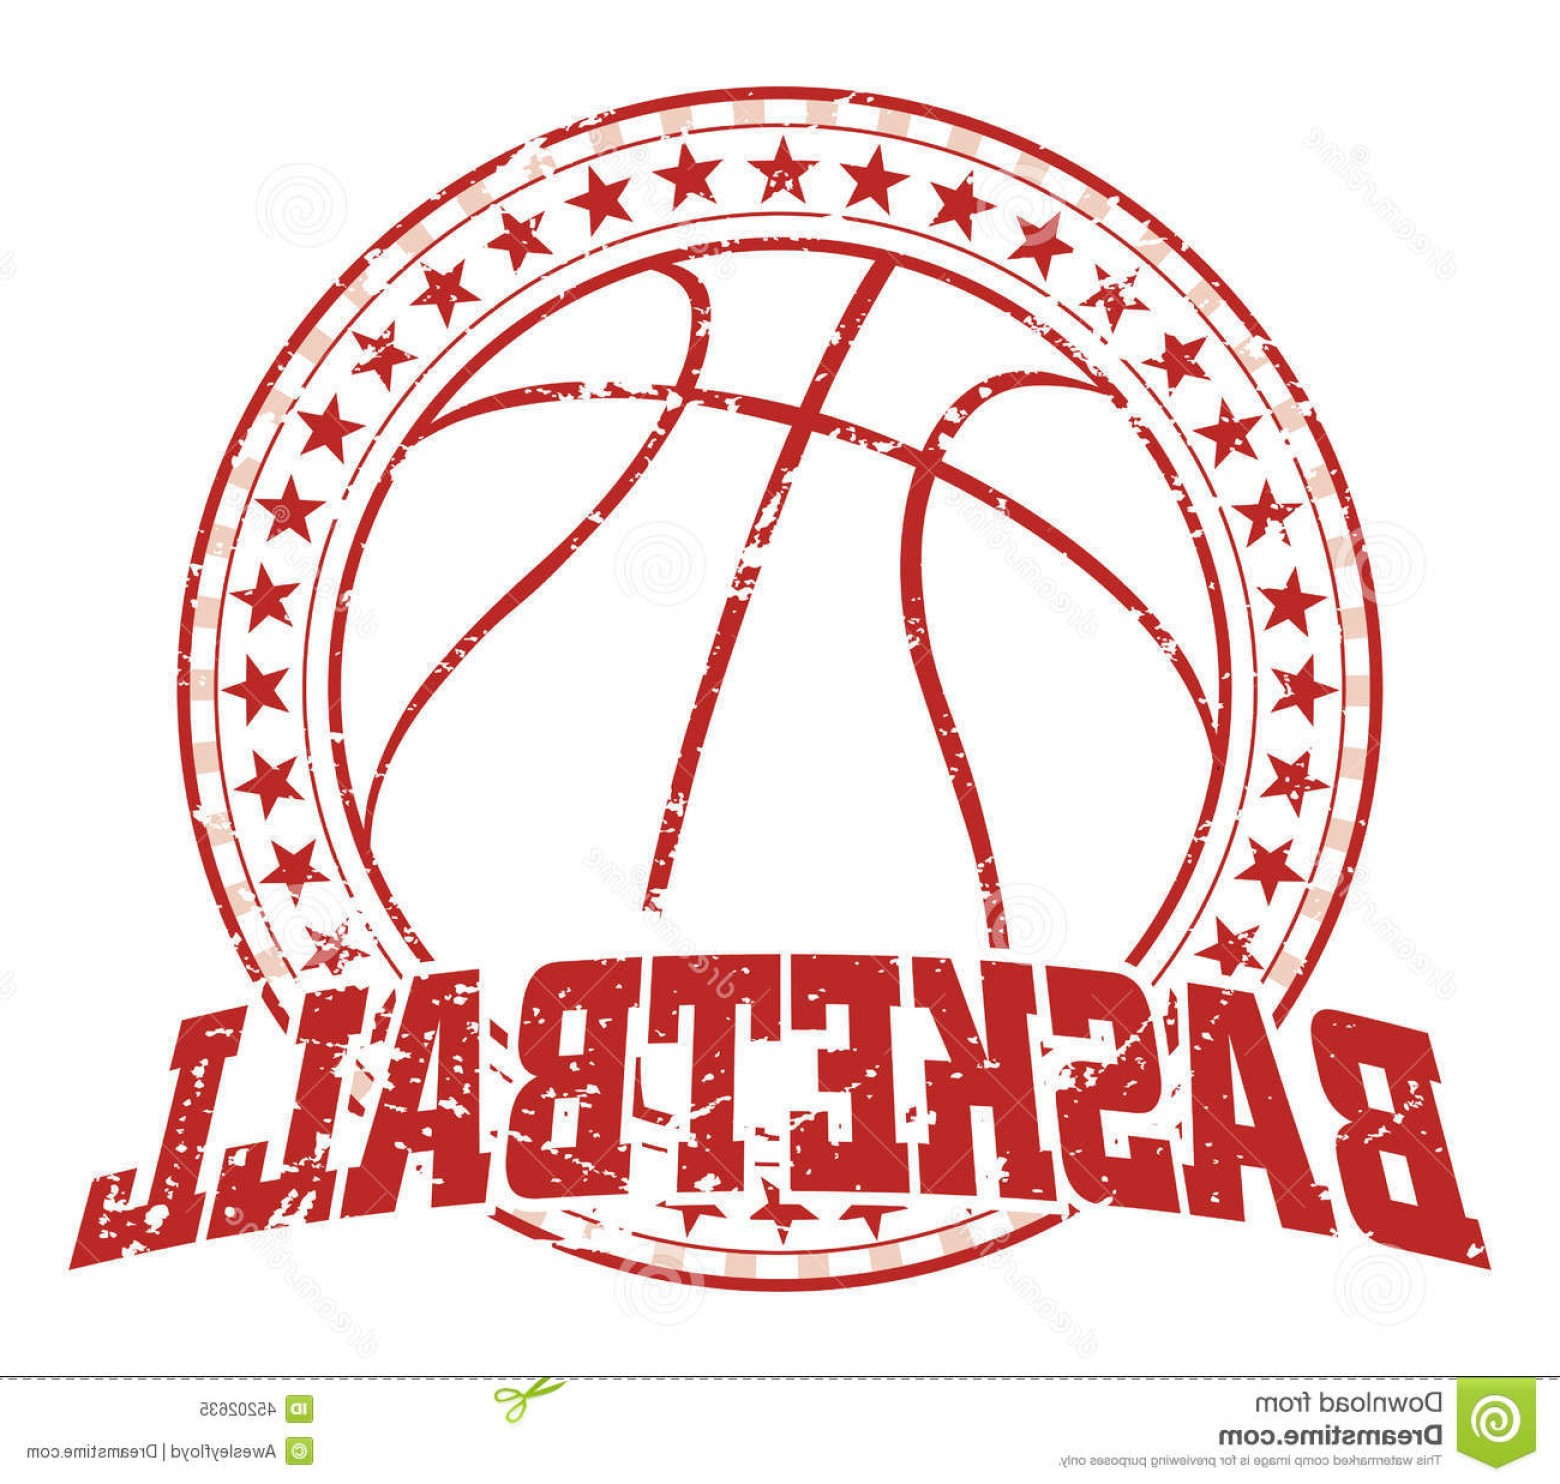 Vintage Basketball Vector: Stock Illustration Basketball Design Vintage Illustration Distressed Style Circle Stars Distressed Look Removable Image